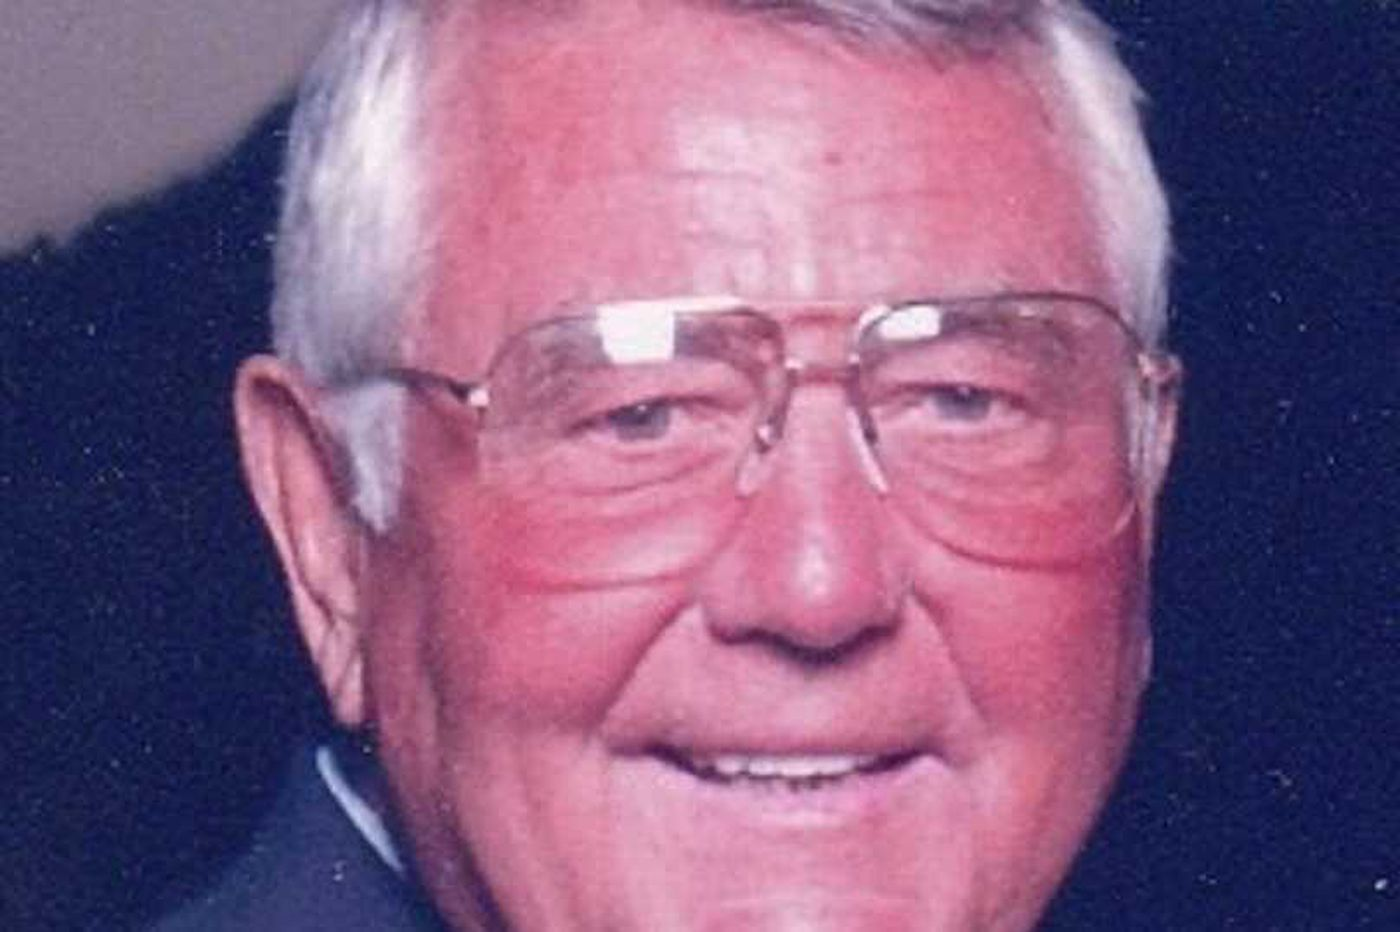 Robert R. Rafferty, 87; owned Rafferty Subaru, known for its jazzy jingle, 'All about you'